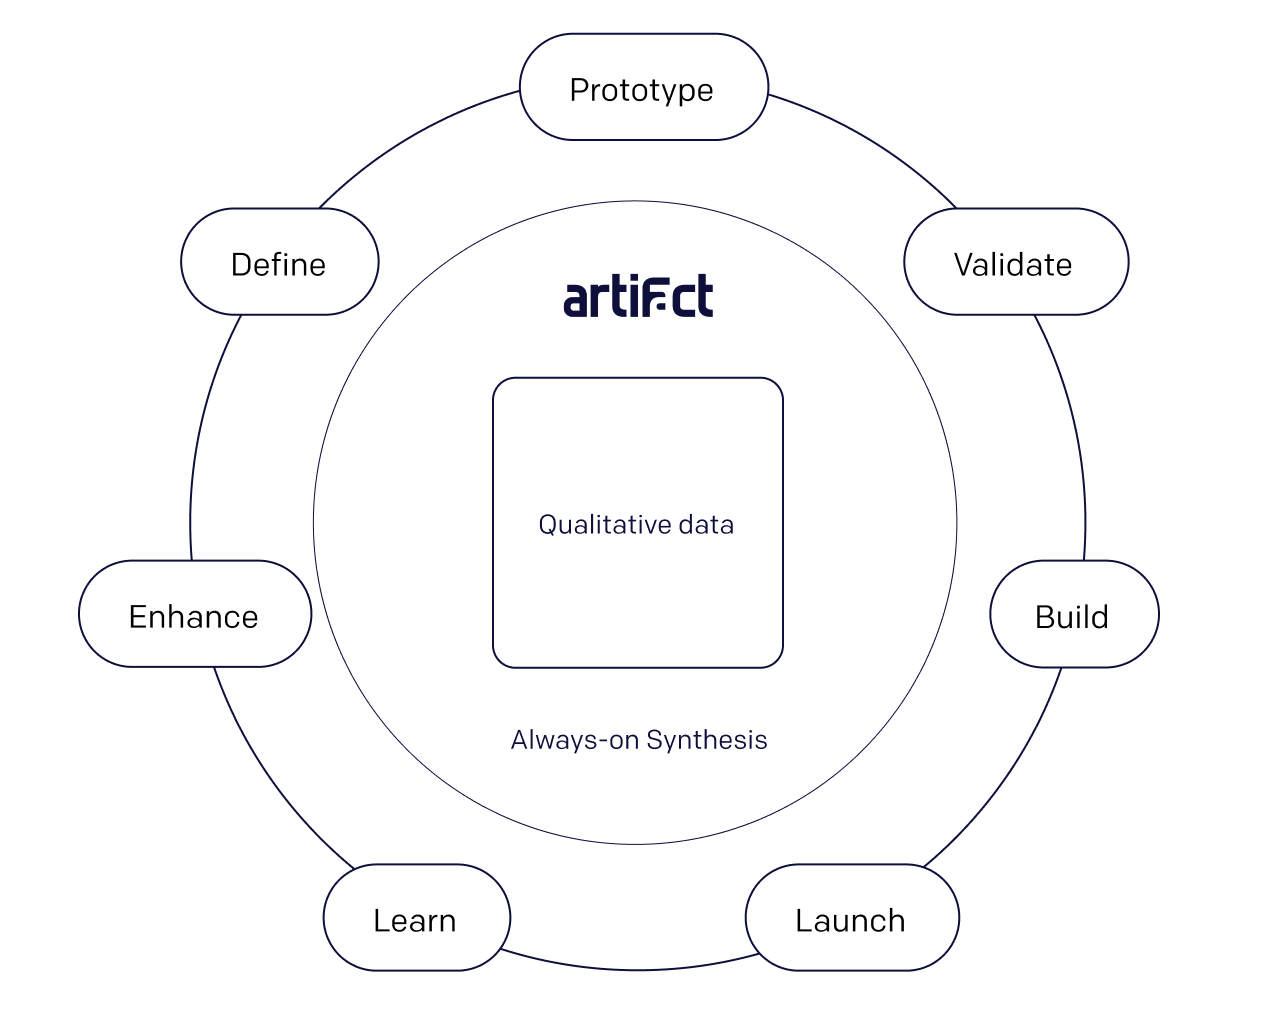 An image depicting how Artifact enables teams to continuously run customer research activities without having to pause to synthesize their data.